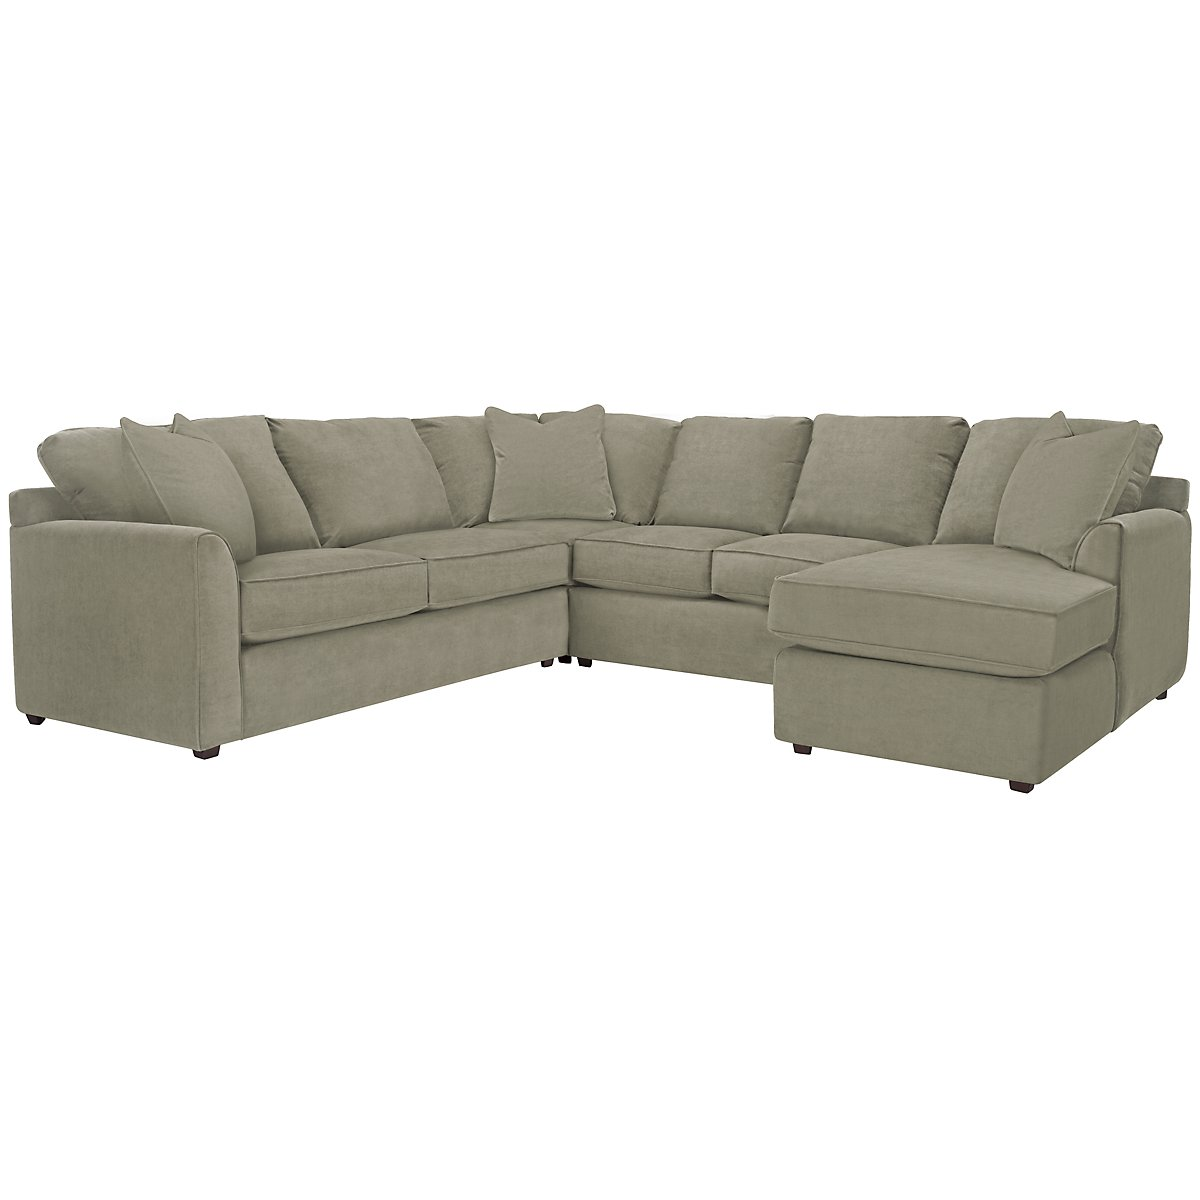 Express3 Light Green Microfiber Small Right Chaise Sectional